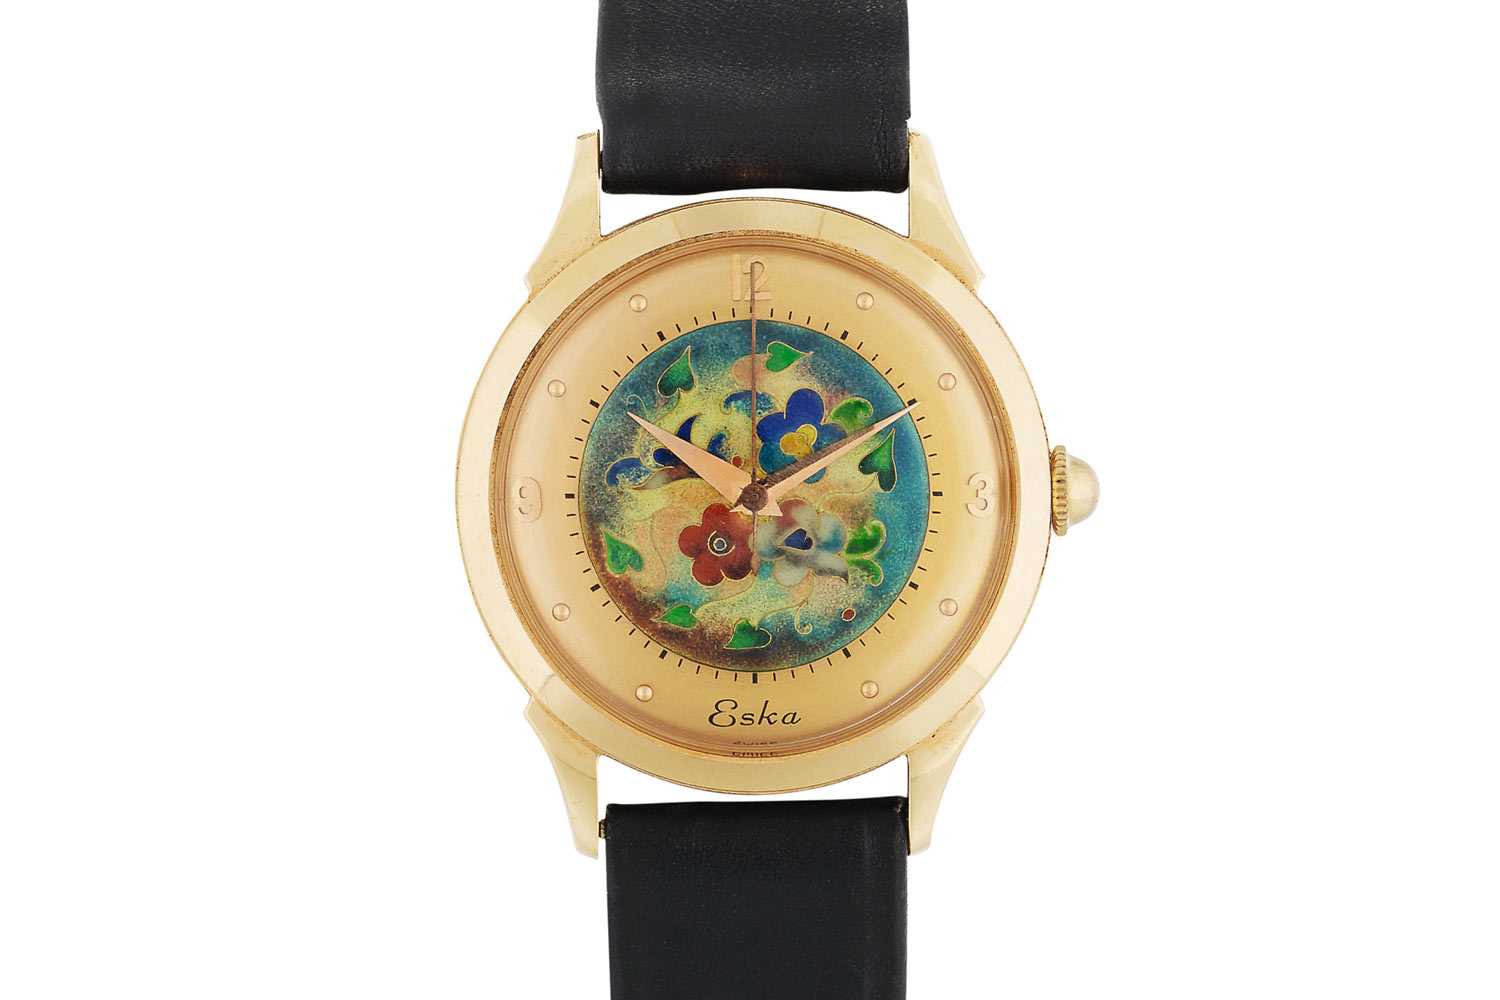 Lot 454: Eska. Pink gold wristwatch with cloisonné enamel dial, circa 1950